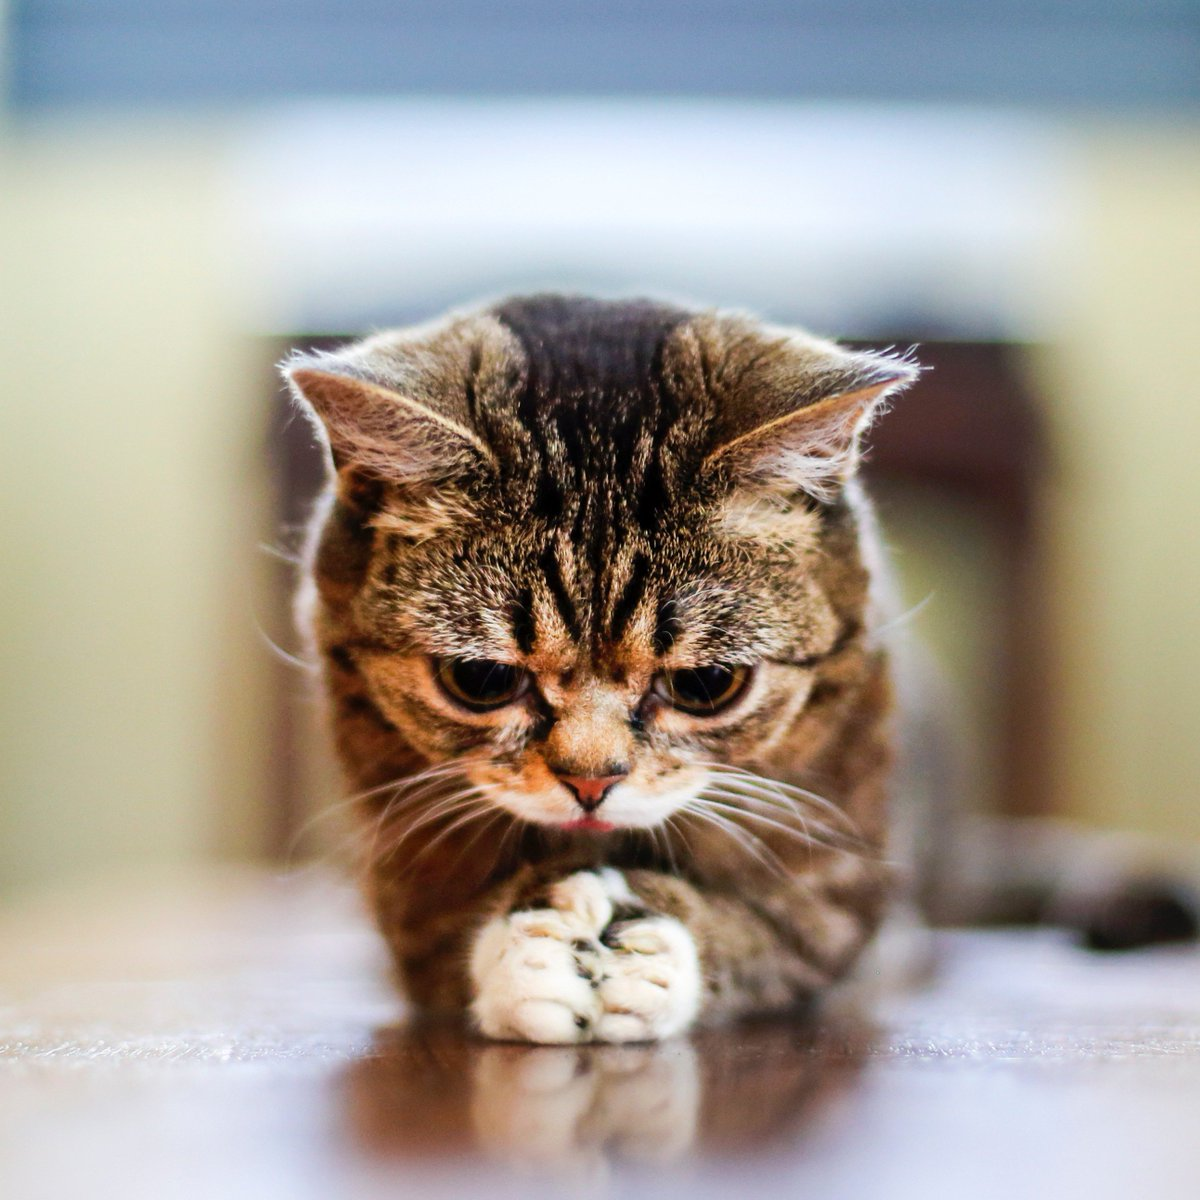 lil bub - photo #23